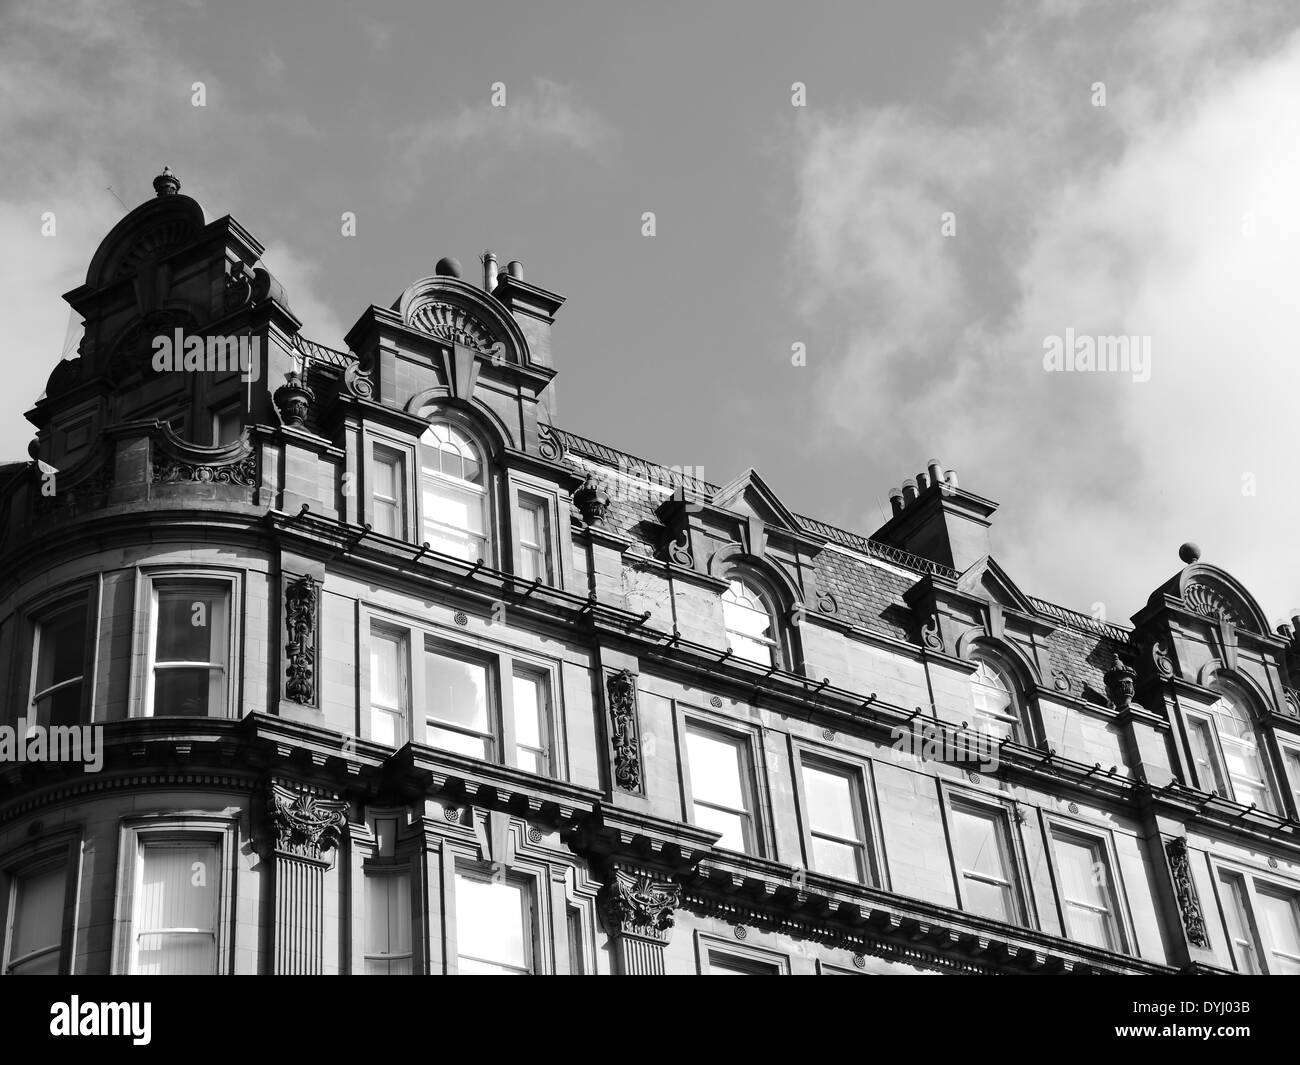 Architecture: neo-classical architectural features of a building in Collingwood Street, Newcastle upon Tyne, England, Stock Photo